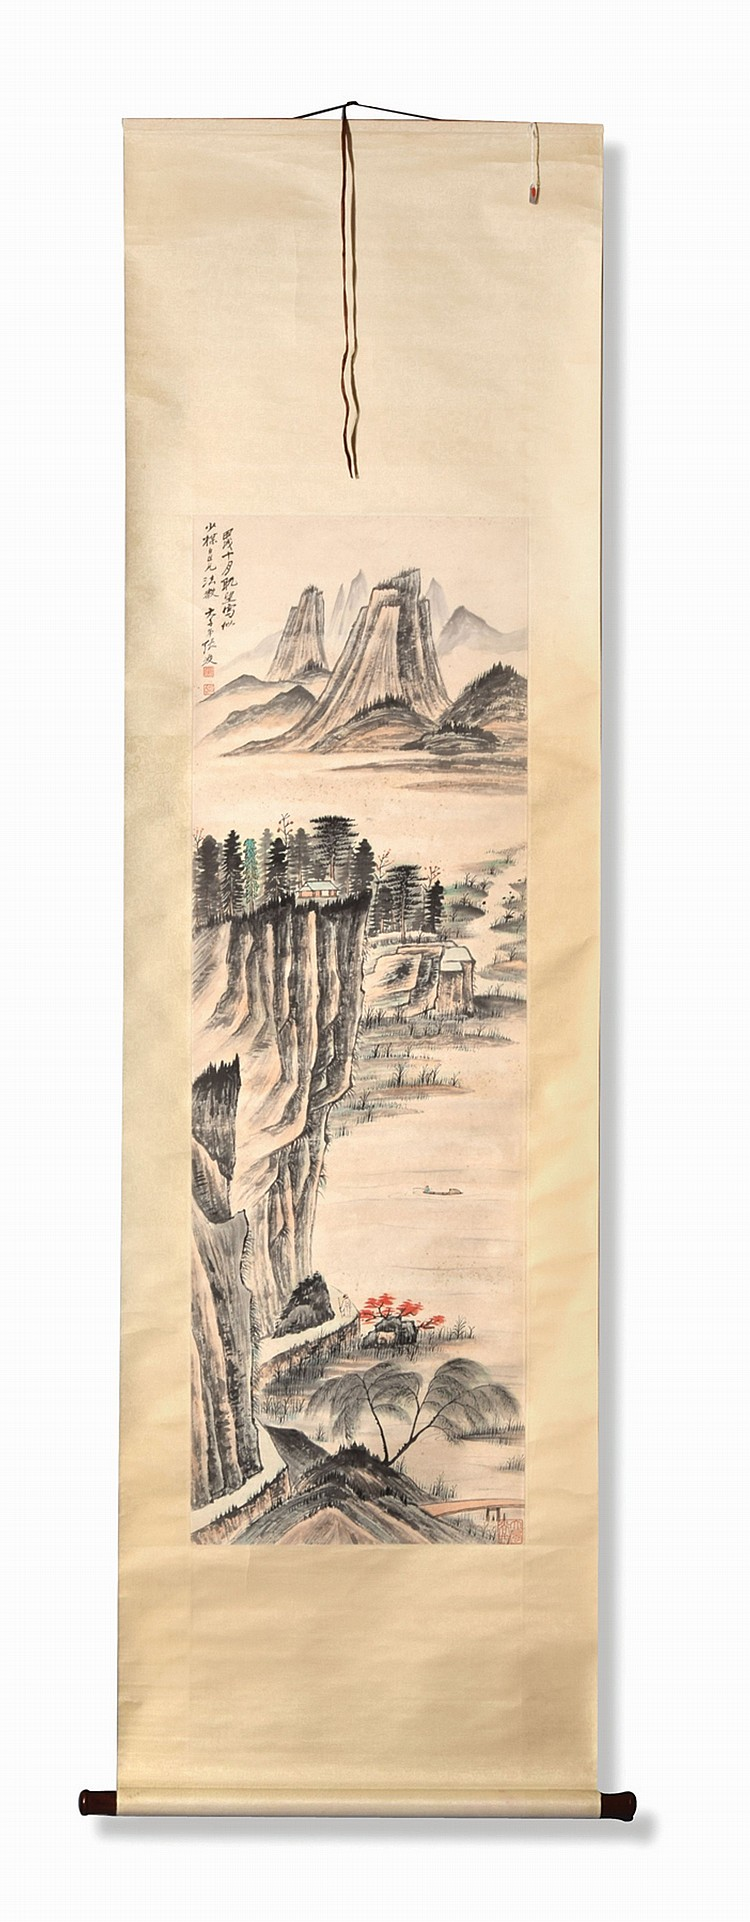 FIGURE AND LANDSCAPE BY ZHANG DAQIAN.